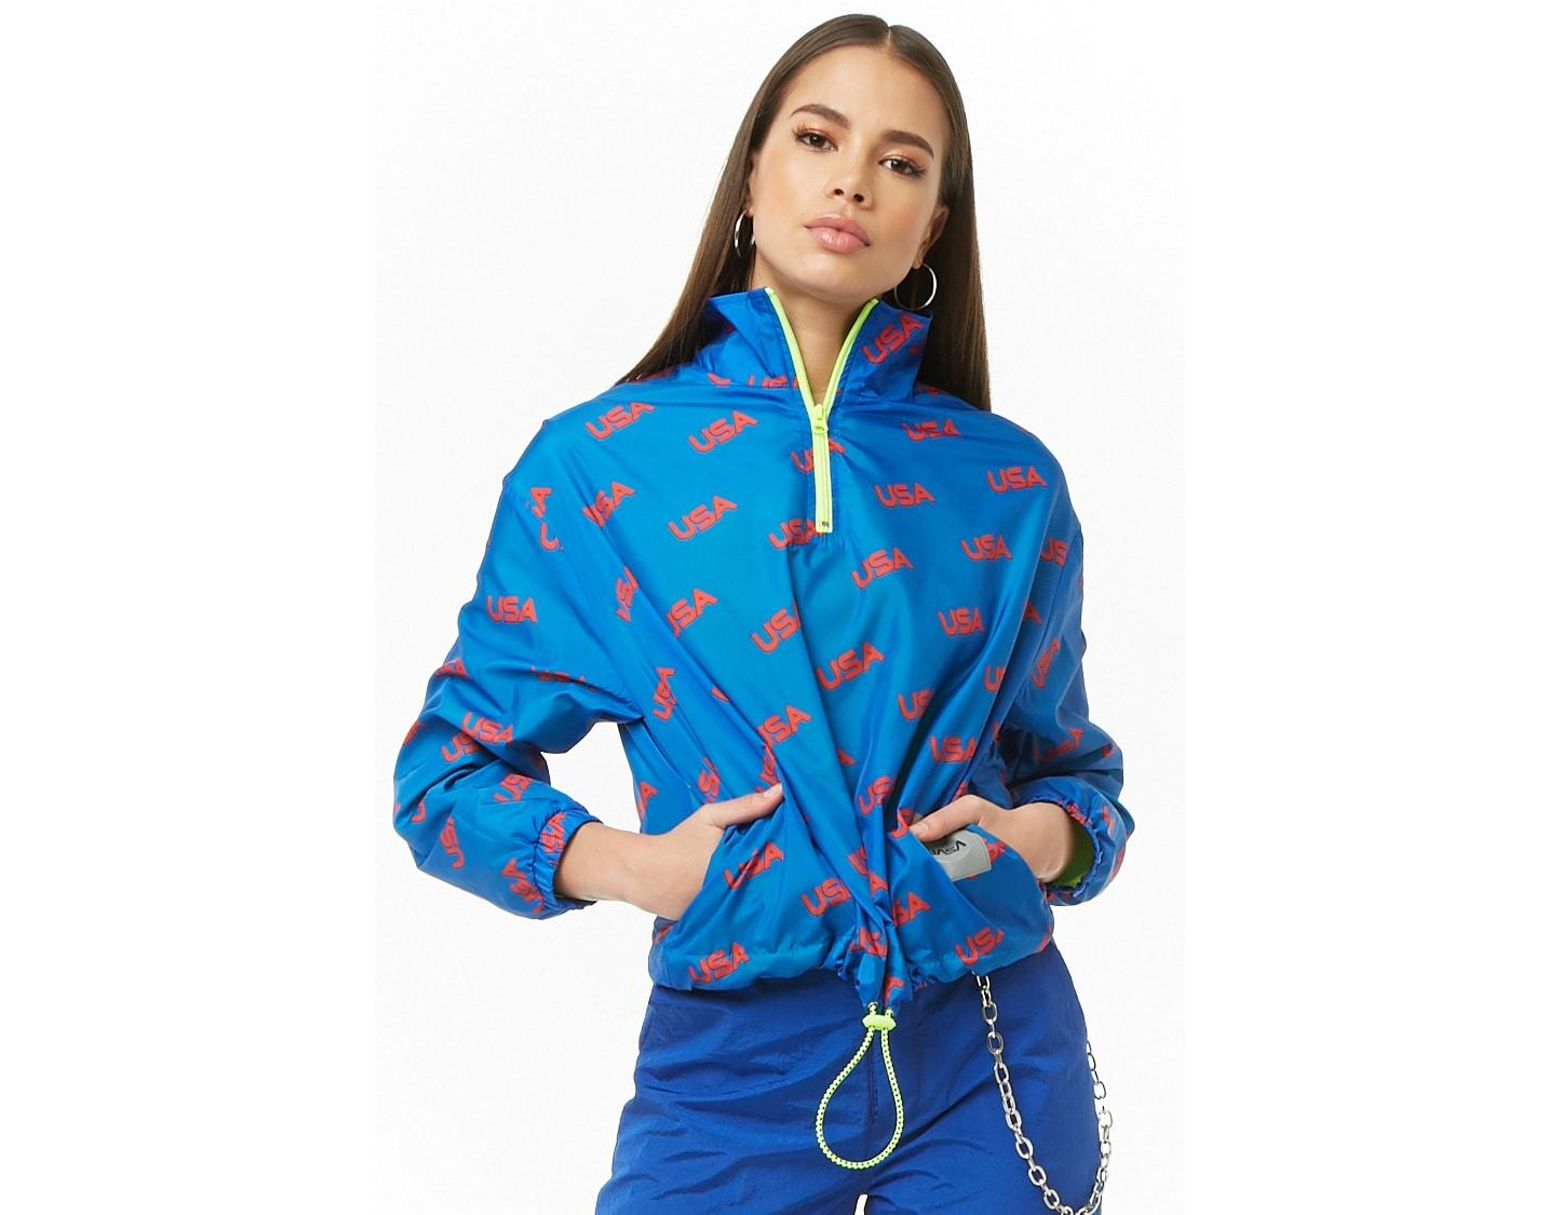 d7854a9f3 Women's Nasa Usa Print Anorak , Blue/red